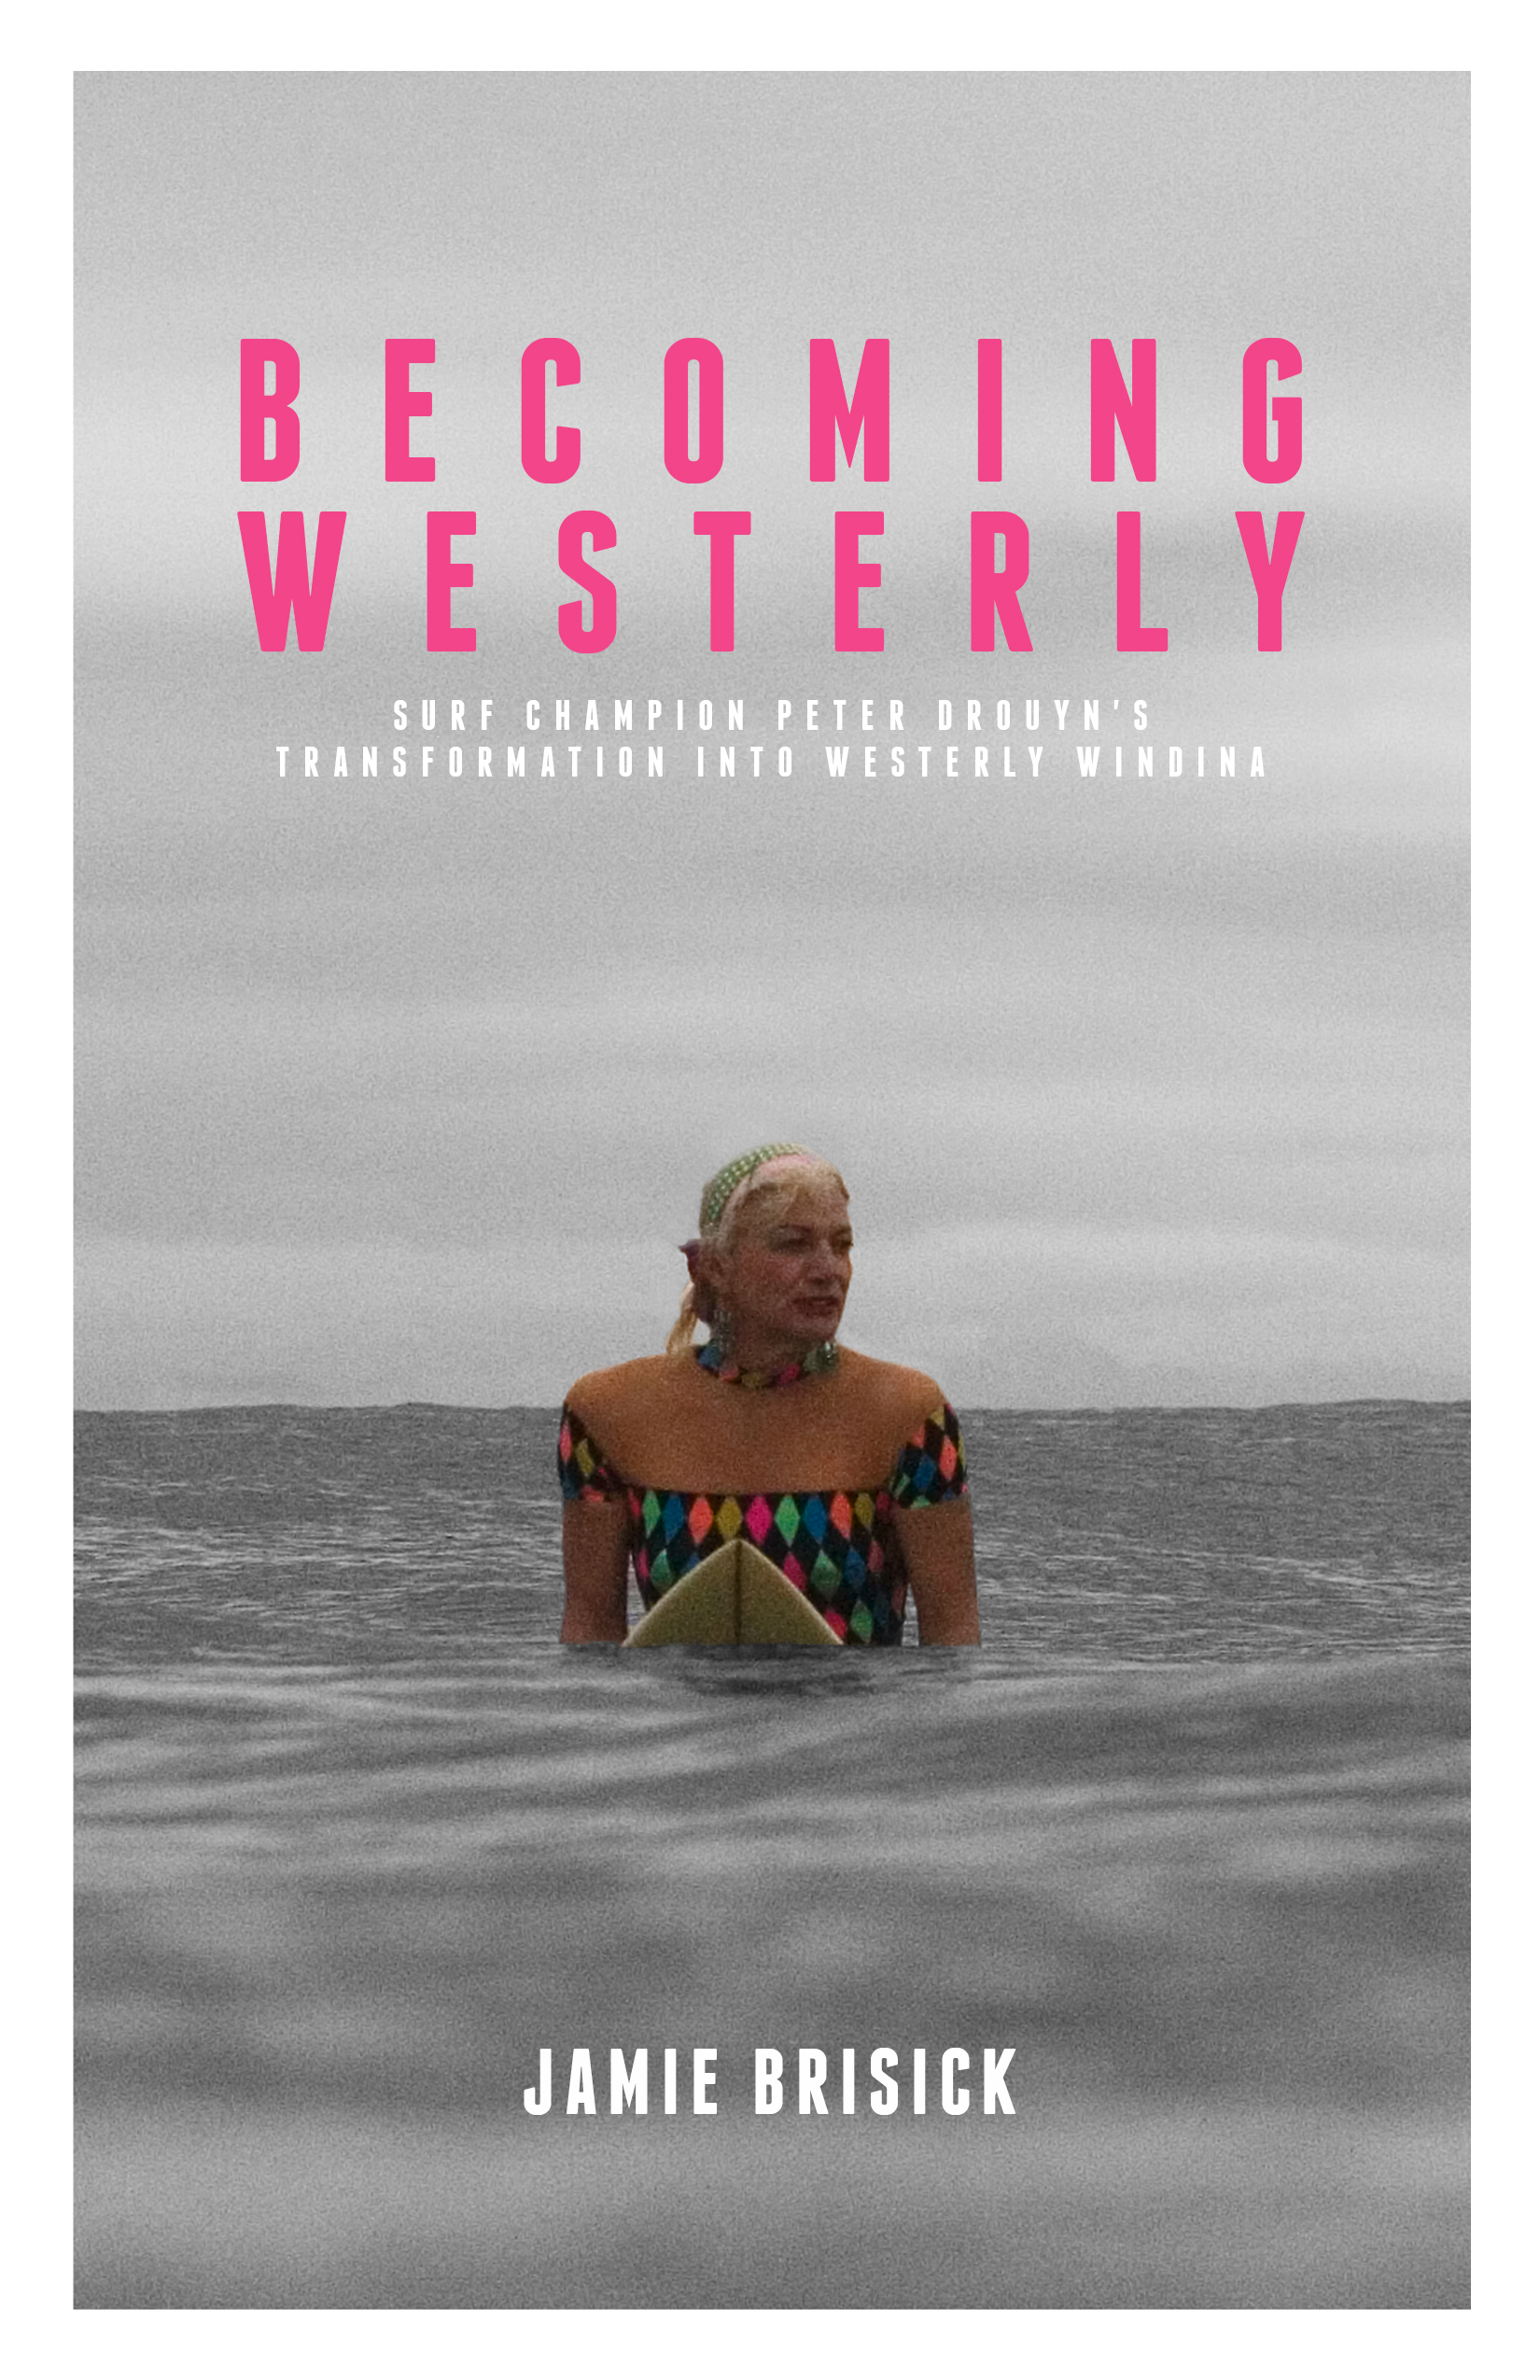 Becoming Westerly (the book)